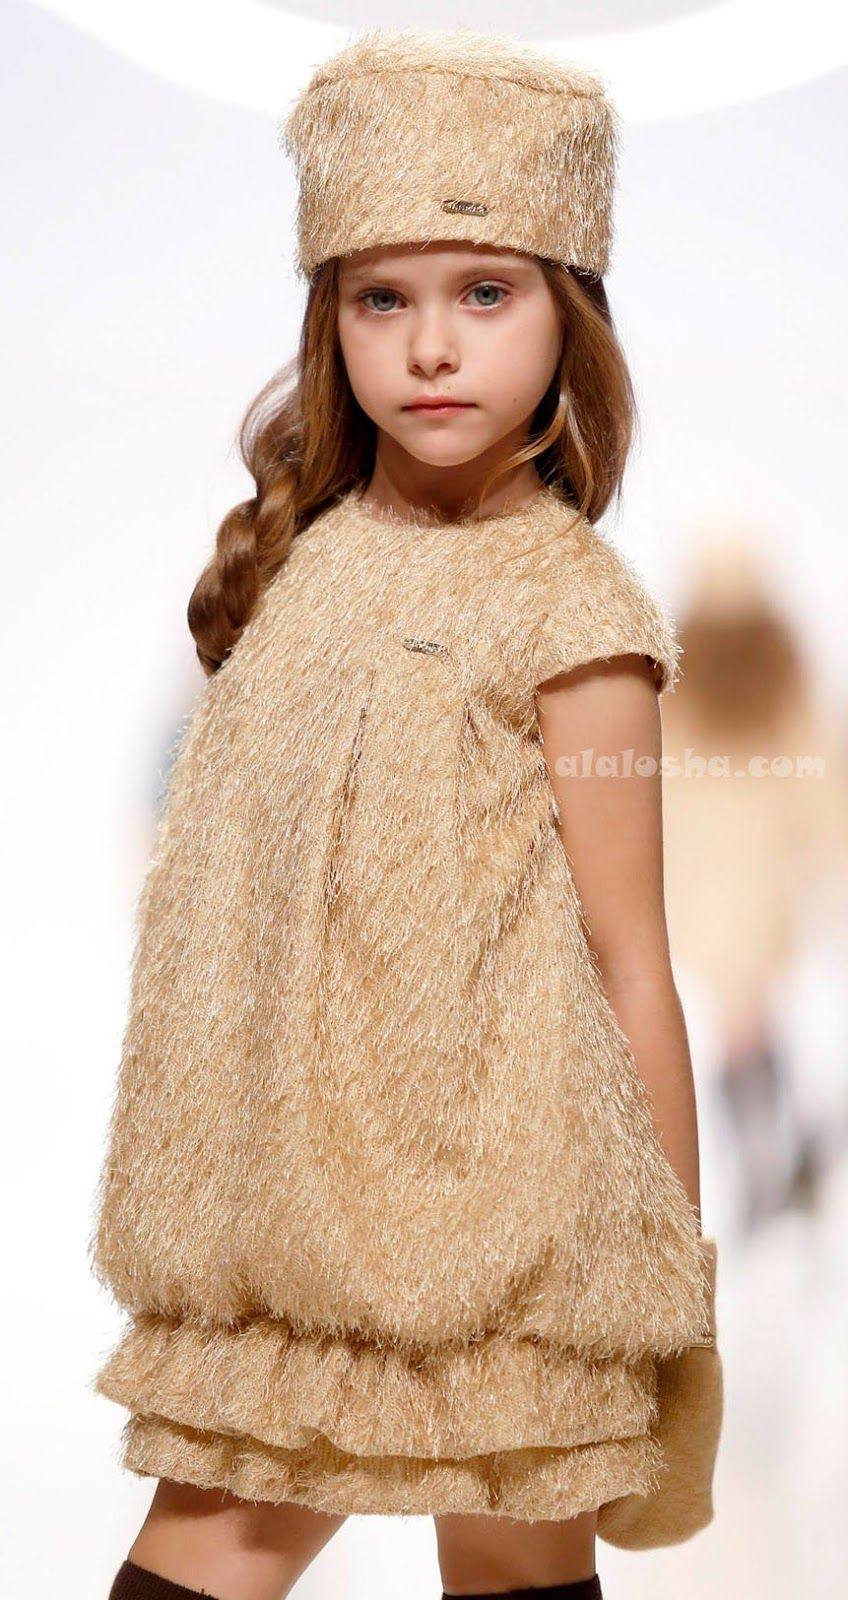 Alalosha Vogue Enfants Child Model Of The Day Lёlya: ALALOSHA: VOGUE ENFANTS: Sanmar AW' 2015 Fimi Fashion Week